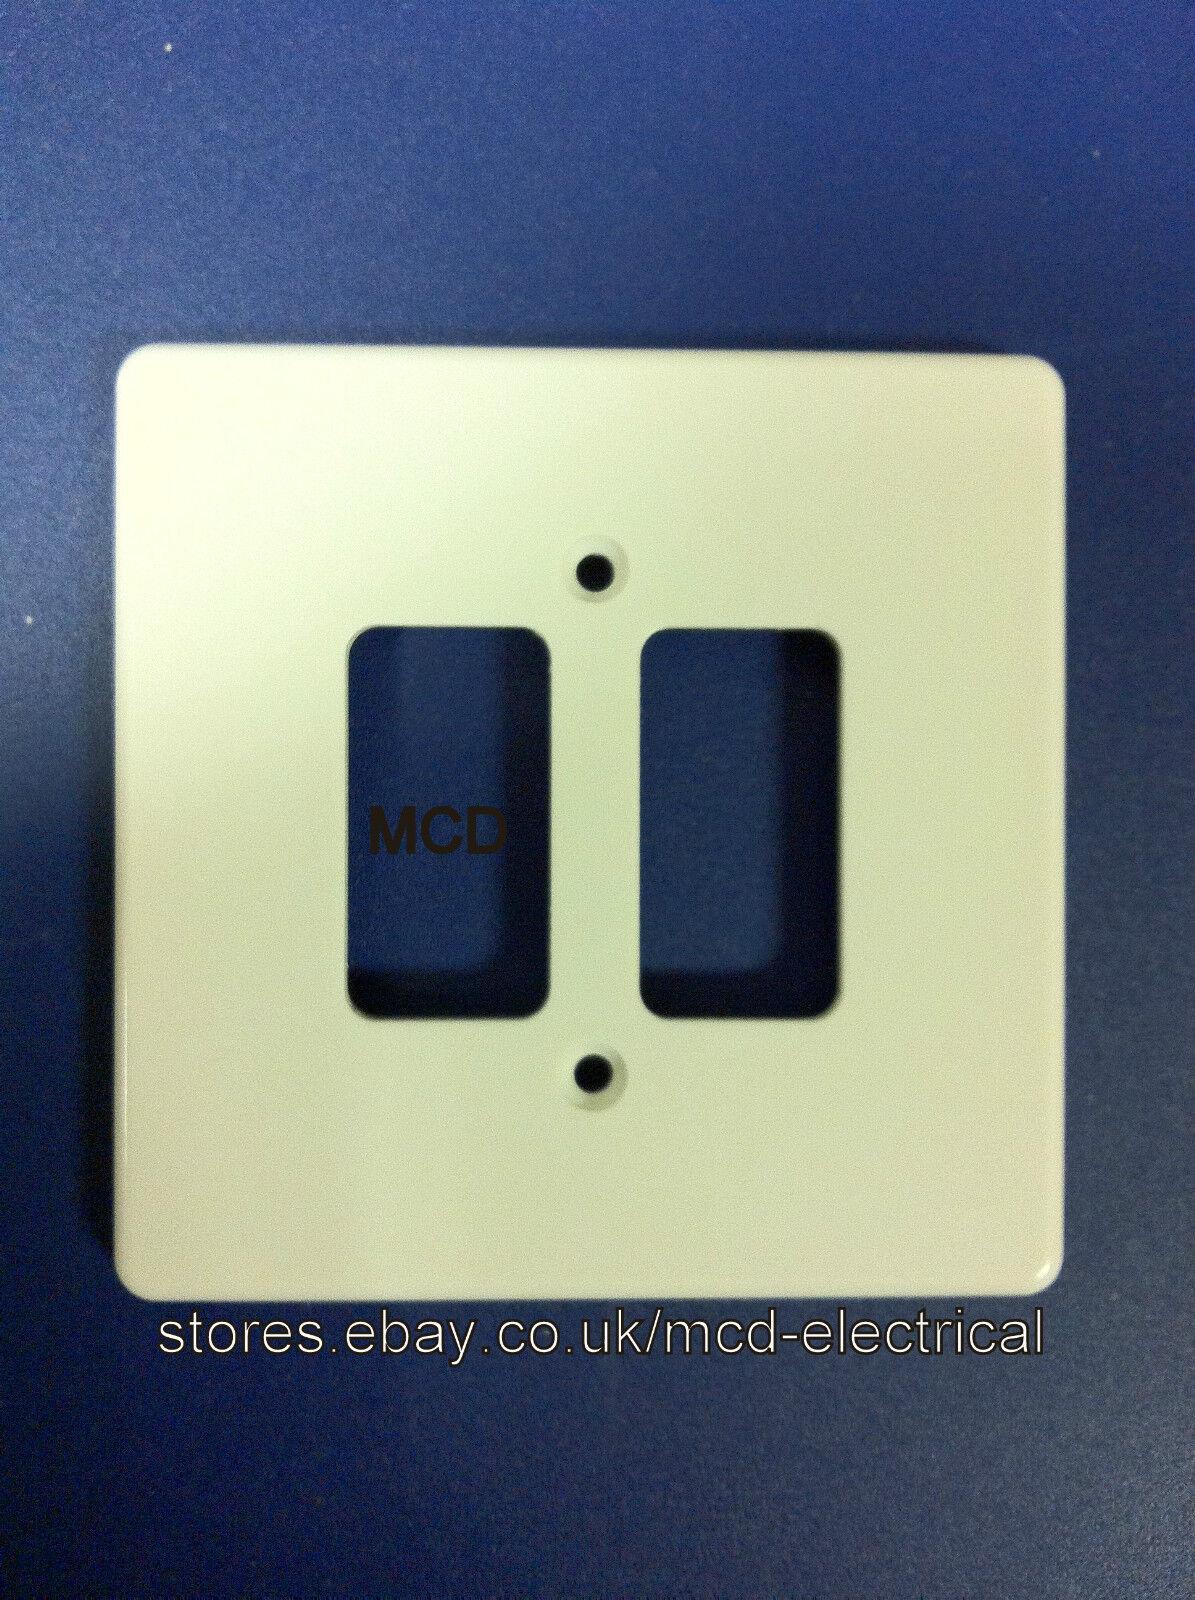 Crabtree Grid Switch Kitchen Multi Gang Plates Wiring A 3a Cooker Hood To 45a Diynot Forums 5572 Cover Plate 2 White 1 Of 1free Shipping